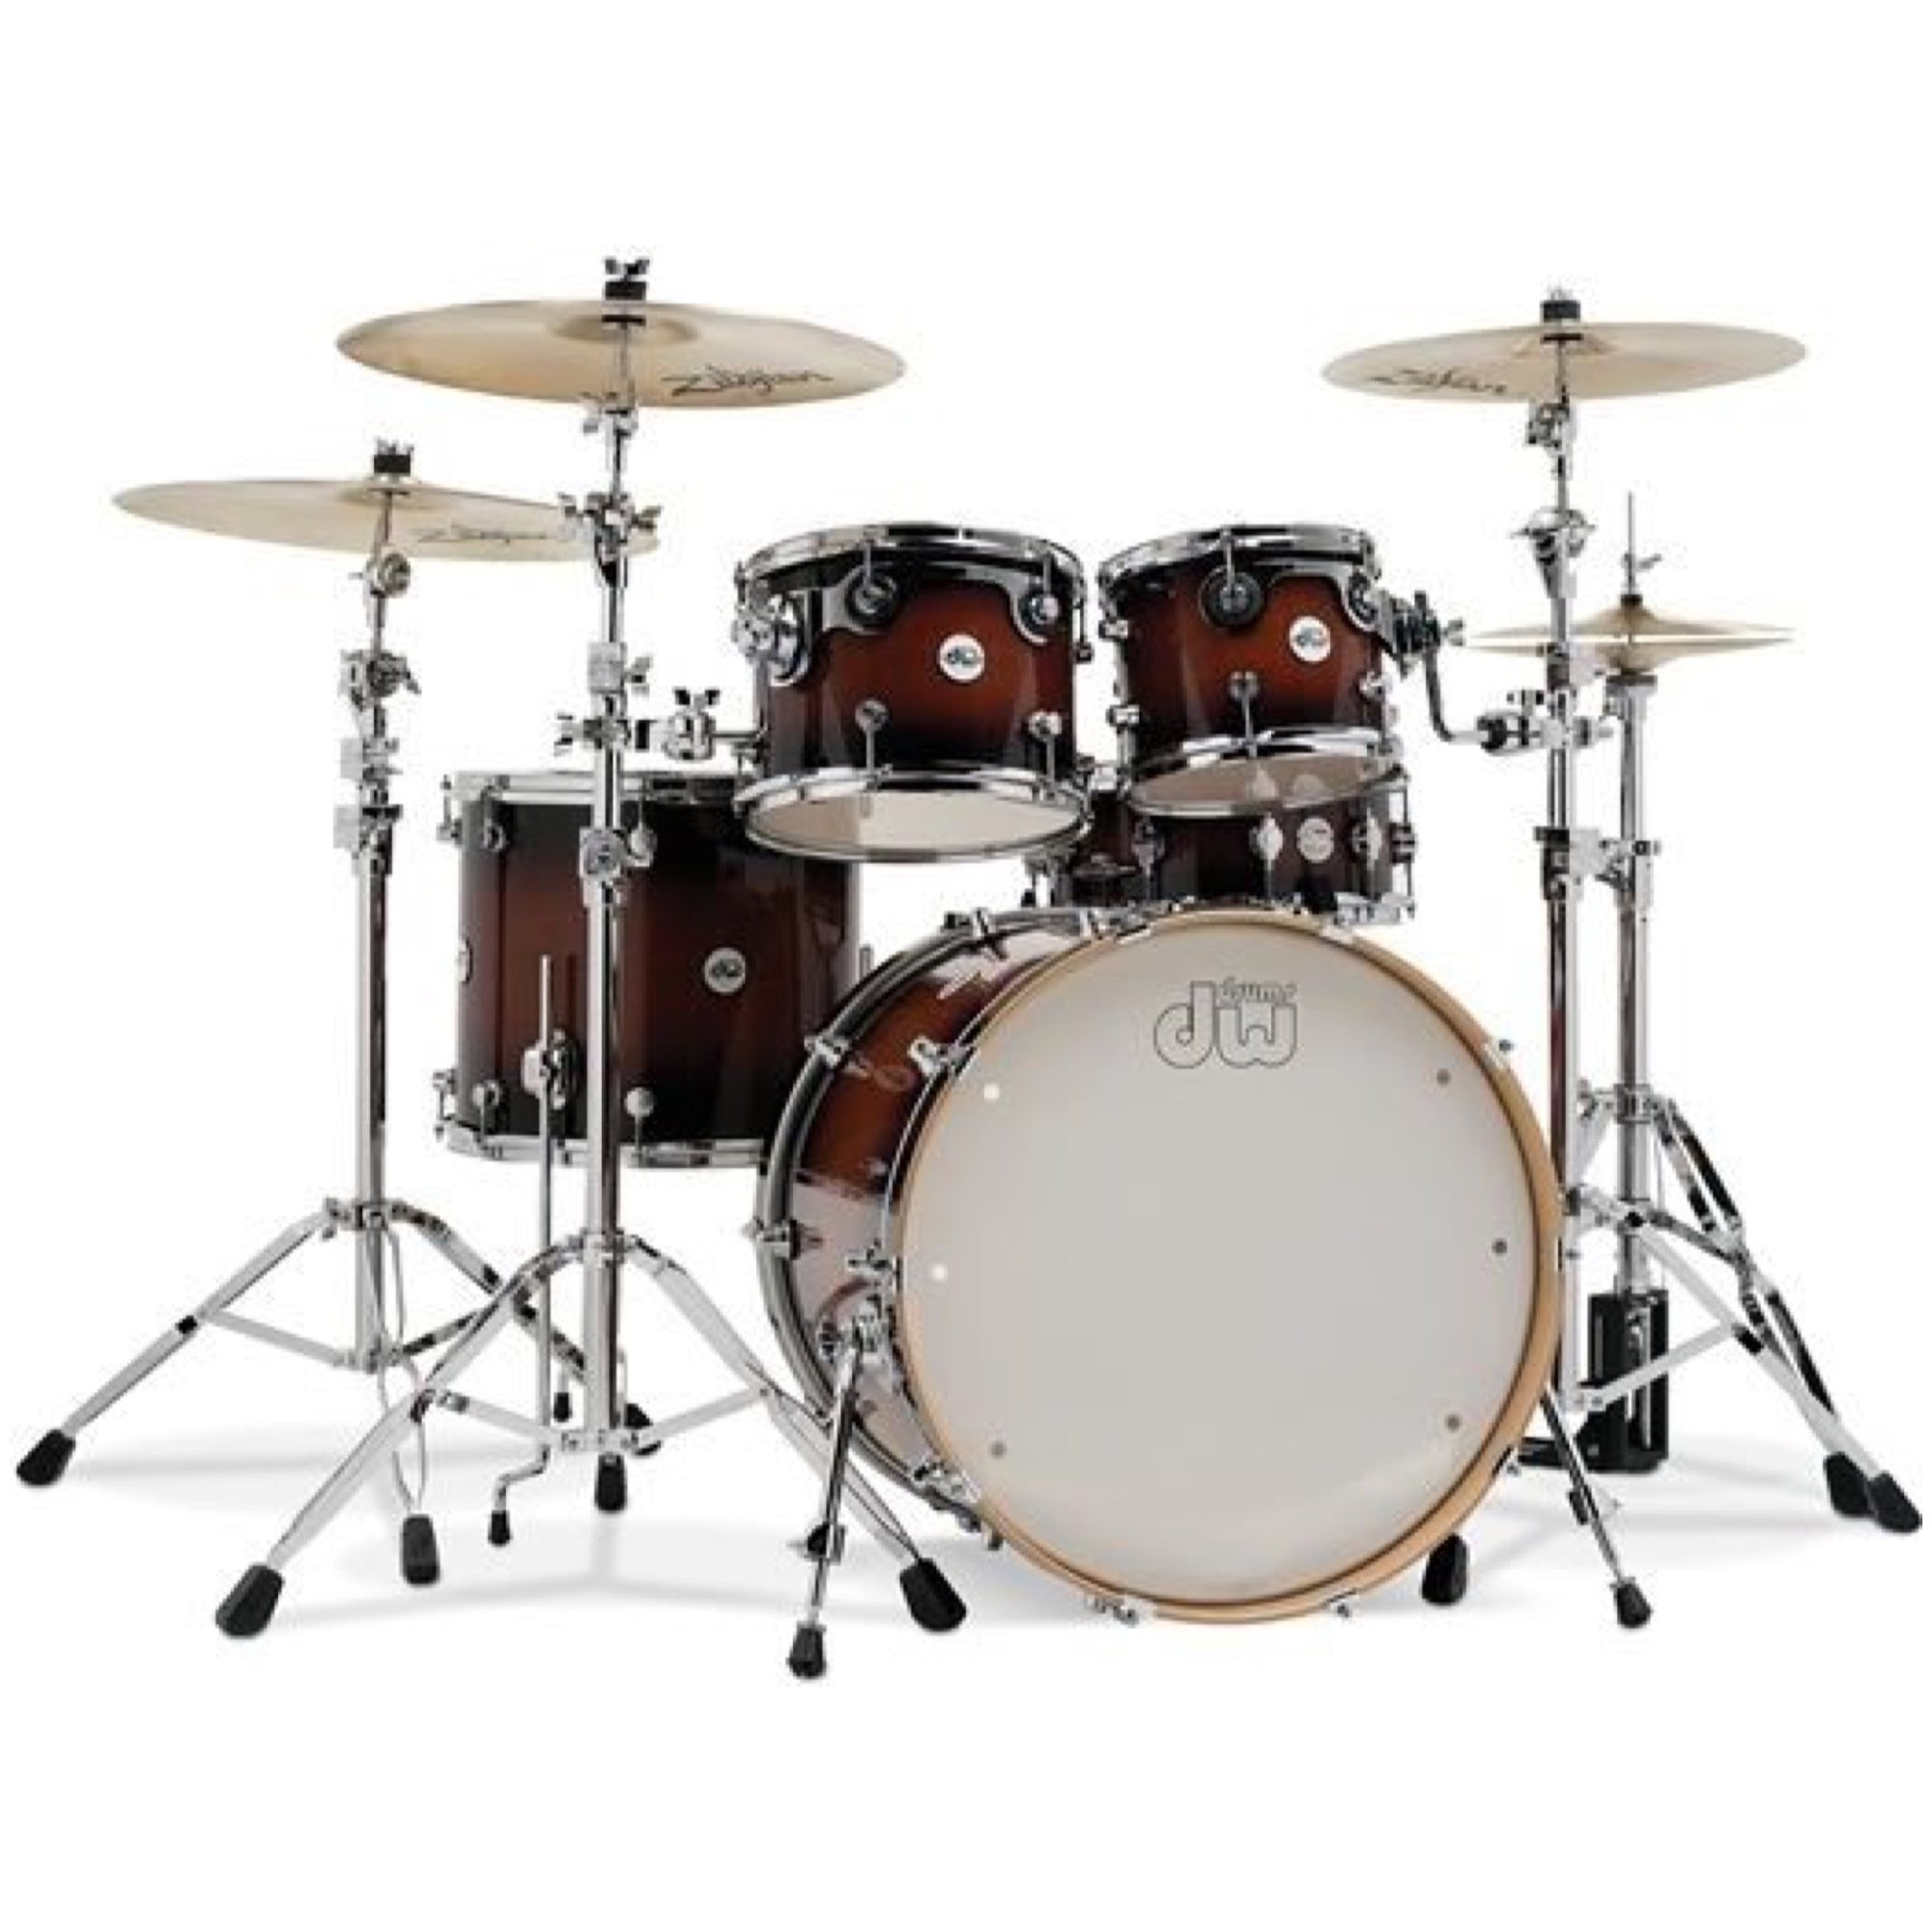 Drum Workshop DDLG2215 Design Series Drum Shell Kit, 5-Piece, Tobacco Burst